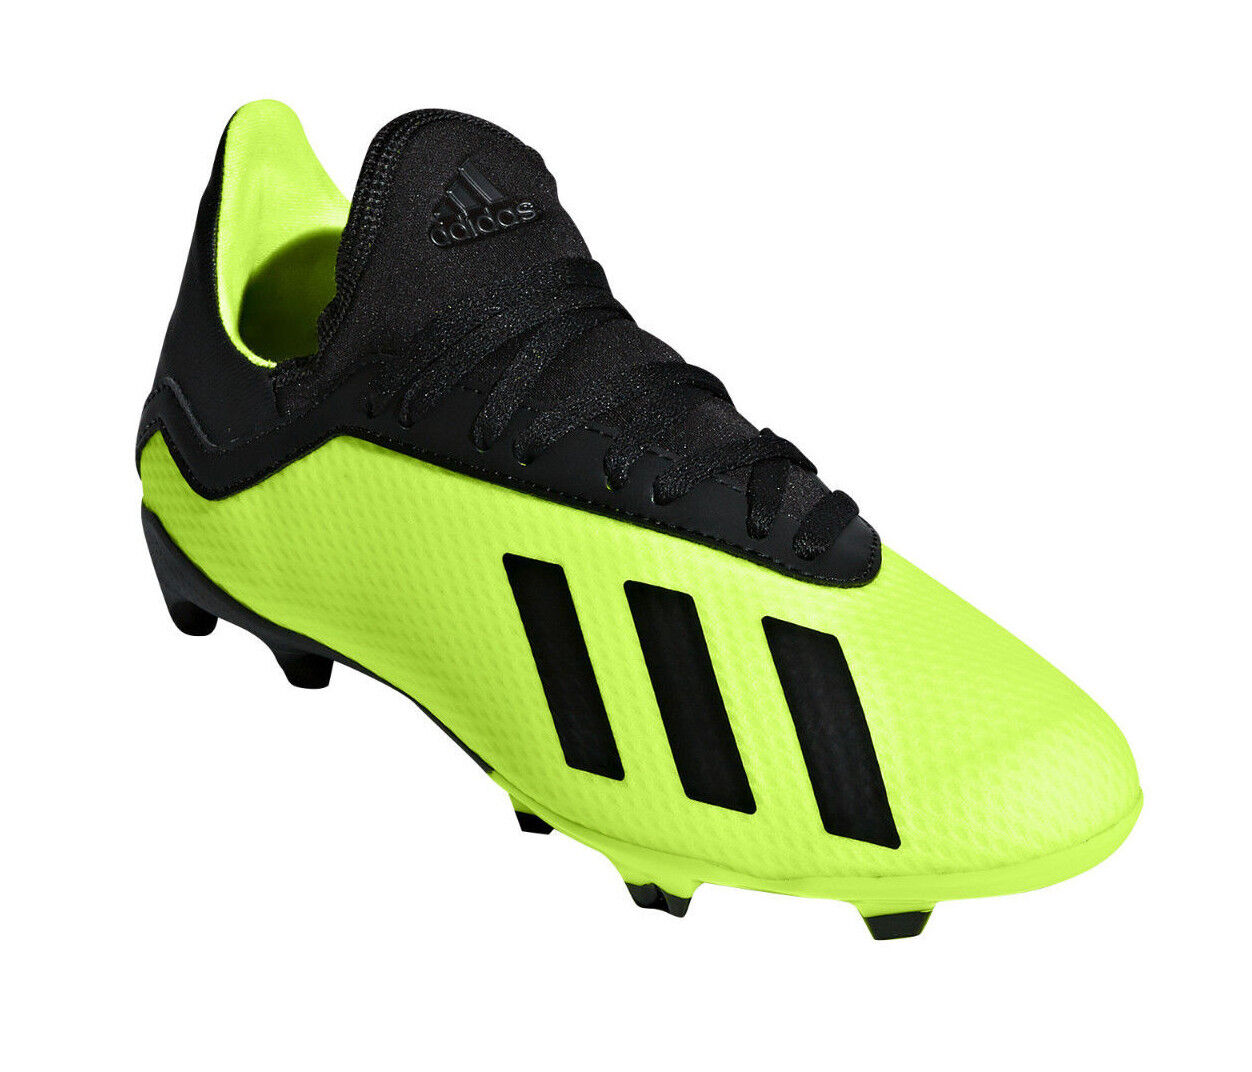 Adidas Kids shoes Boys Football Cleats X 18.3 Firm FG Soccer Boots New DB2418